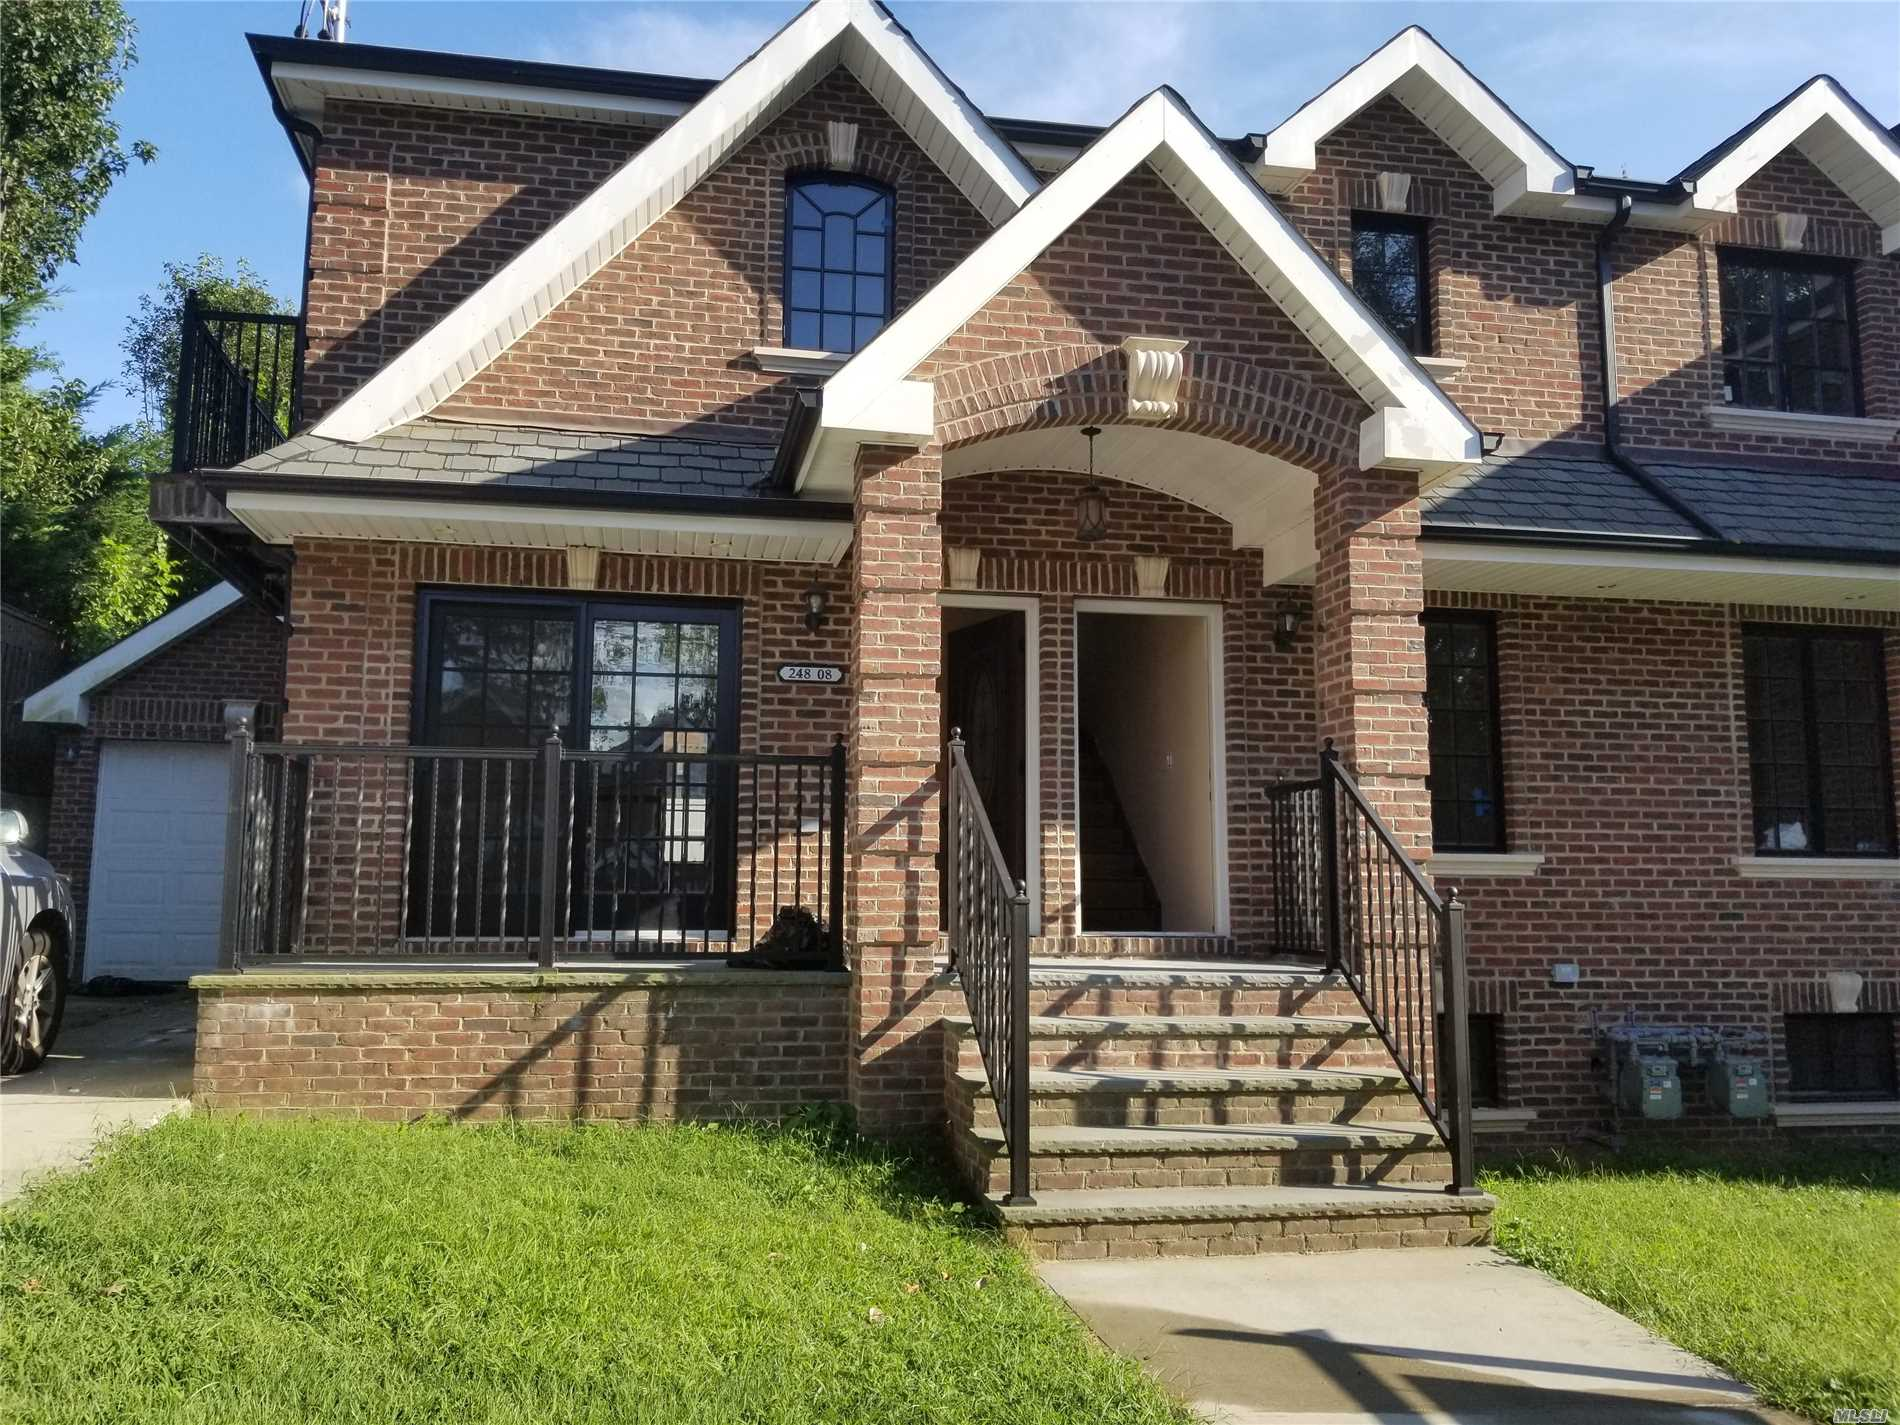 Brick 2 Family In Prime Location,  Walk To Lirr, Custom Design Contemporary Style, Beautiful Oak Wood Floor, Luxury Material & Appliance, Cac, High Ceiling Huge Basement